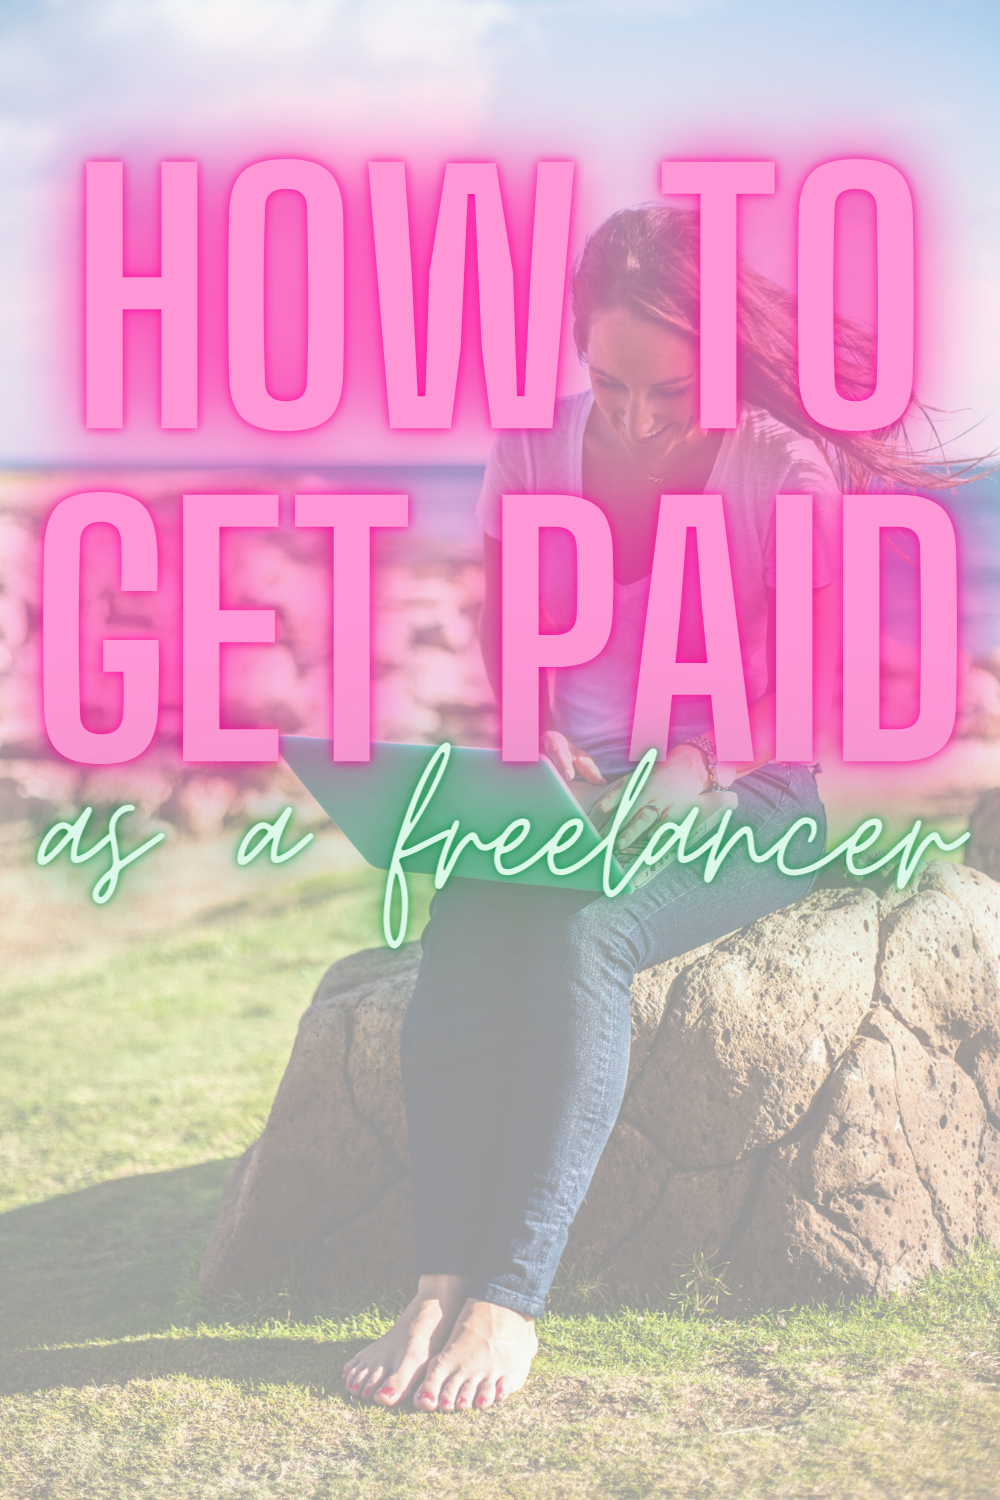 How To Get Paid As A Freelancer - Just starting out in your career as being your own boss? Here's how to get paid as a freelancer! | Ways To Get Paid As a Freelancer - Freelance Work - Getting Paid For Freelance Work - Freelance Writing